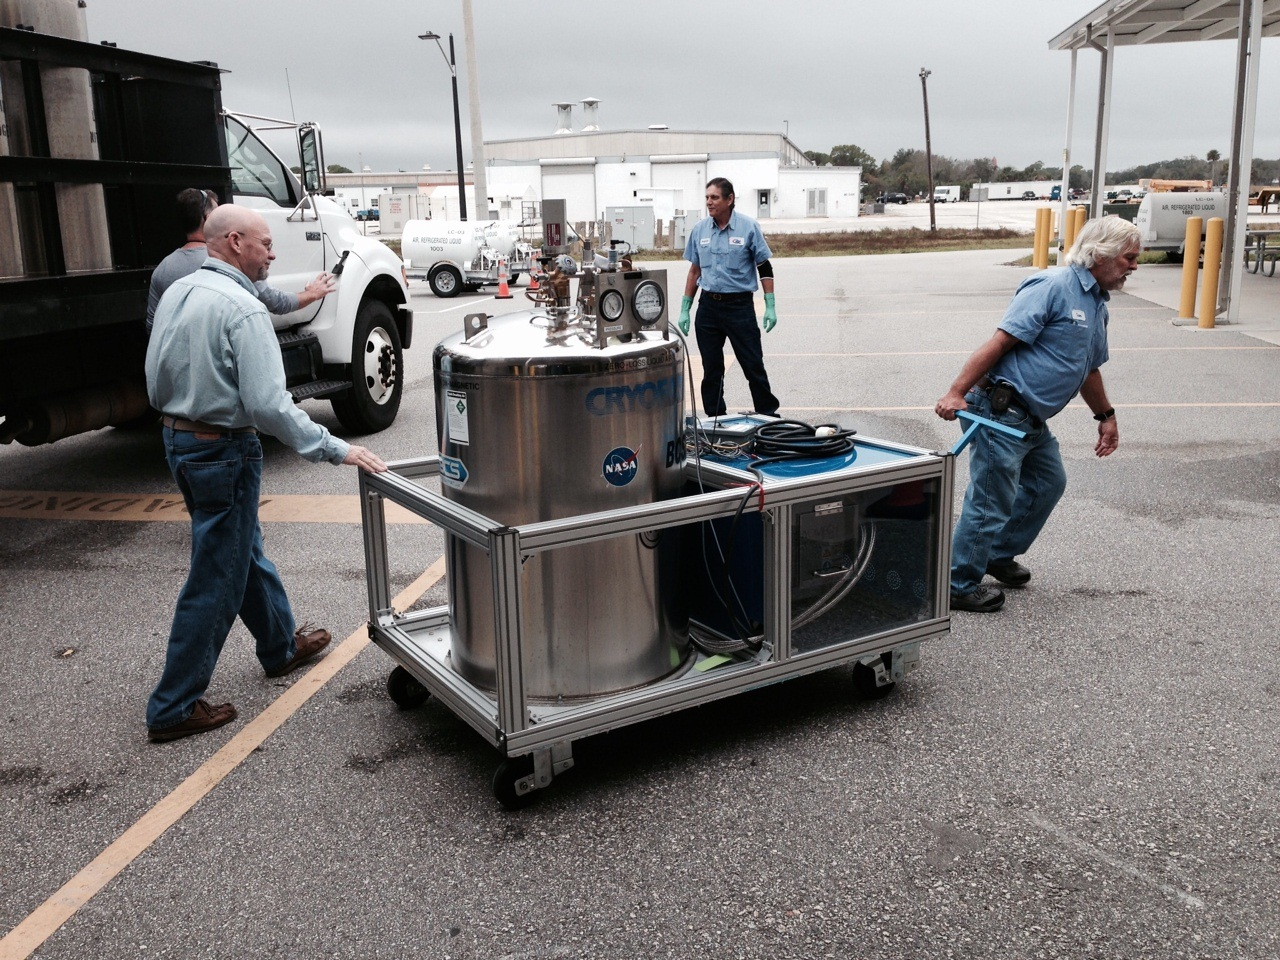 Prototype cart being put into operational use at Life Support Facility.